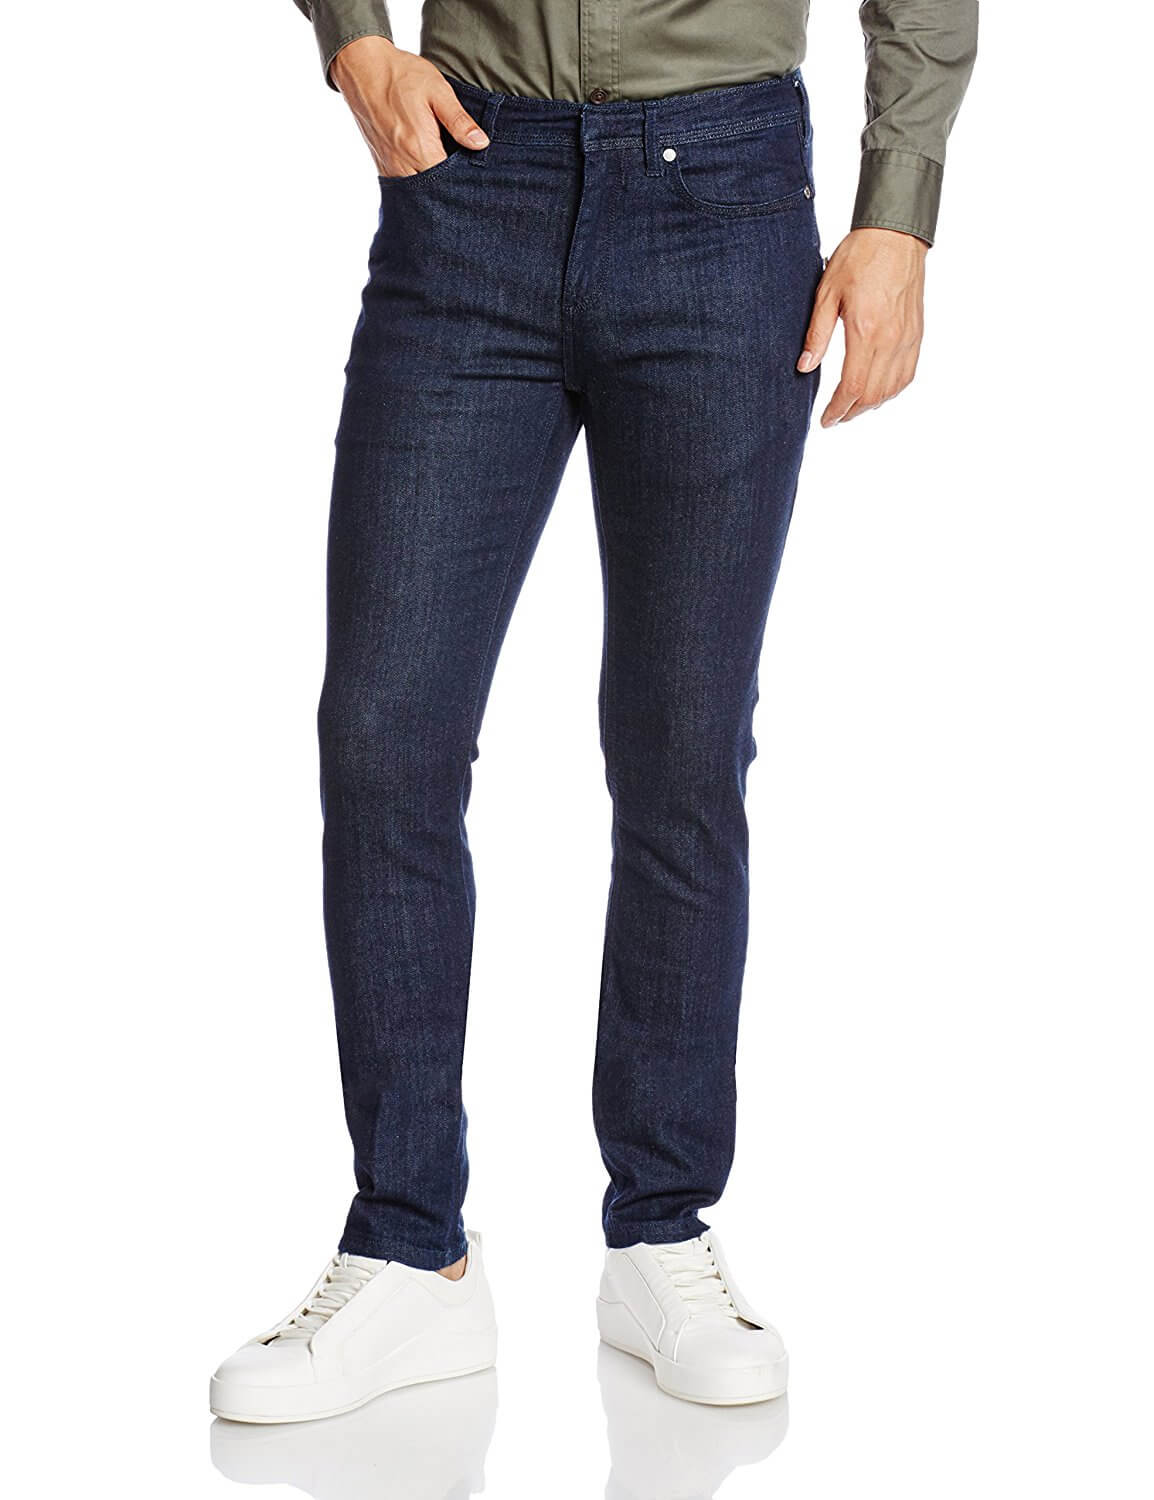 Neil Barrett A805T SUPER SKINNY CLASSIC STRETCH BLUE DENIM